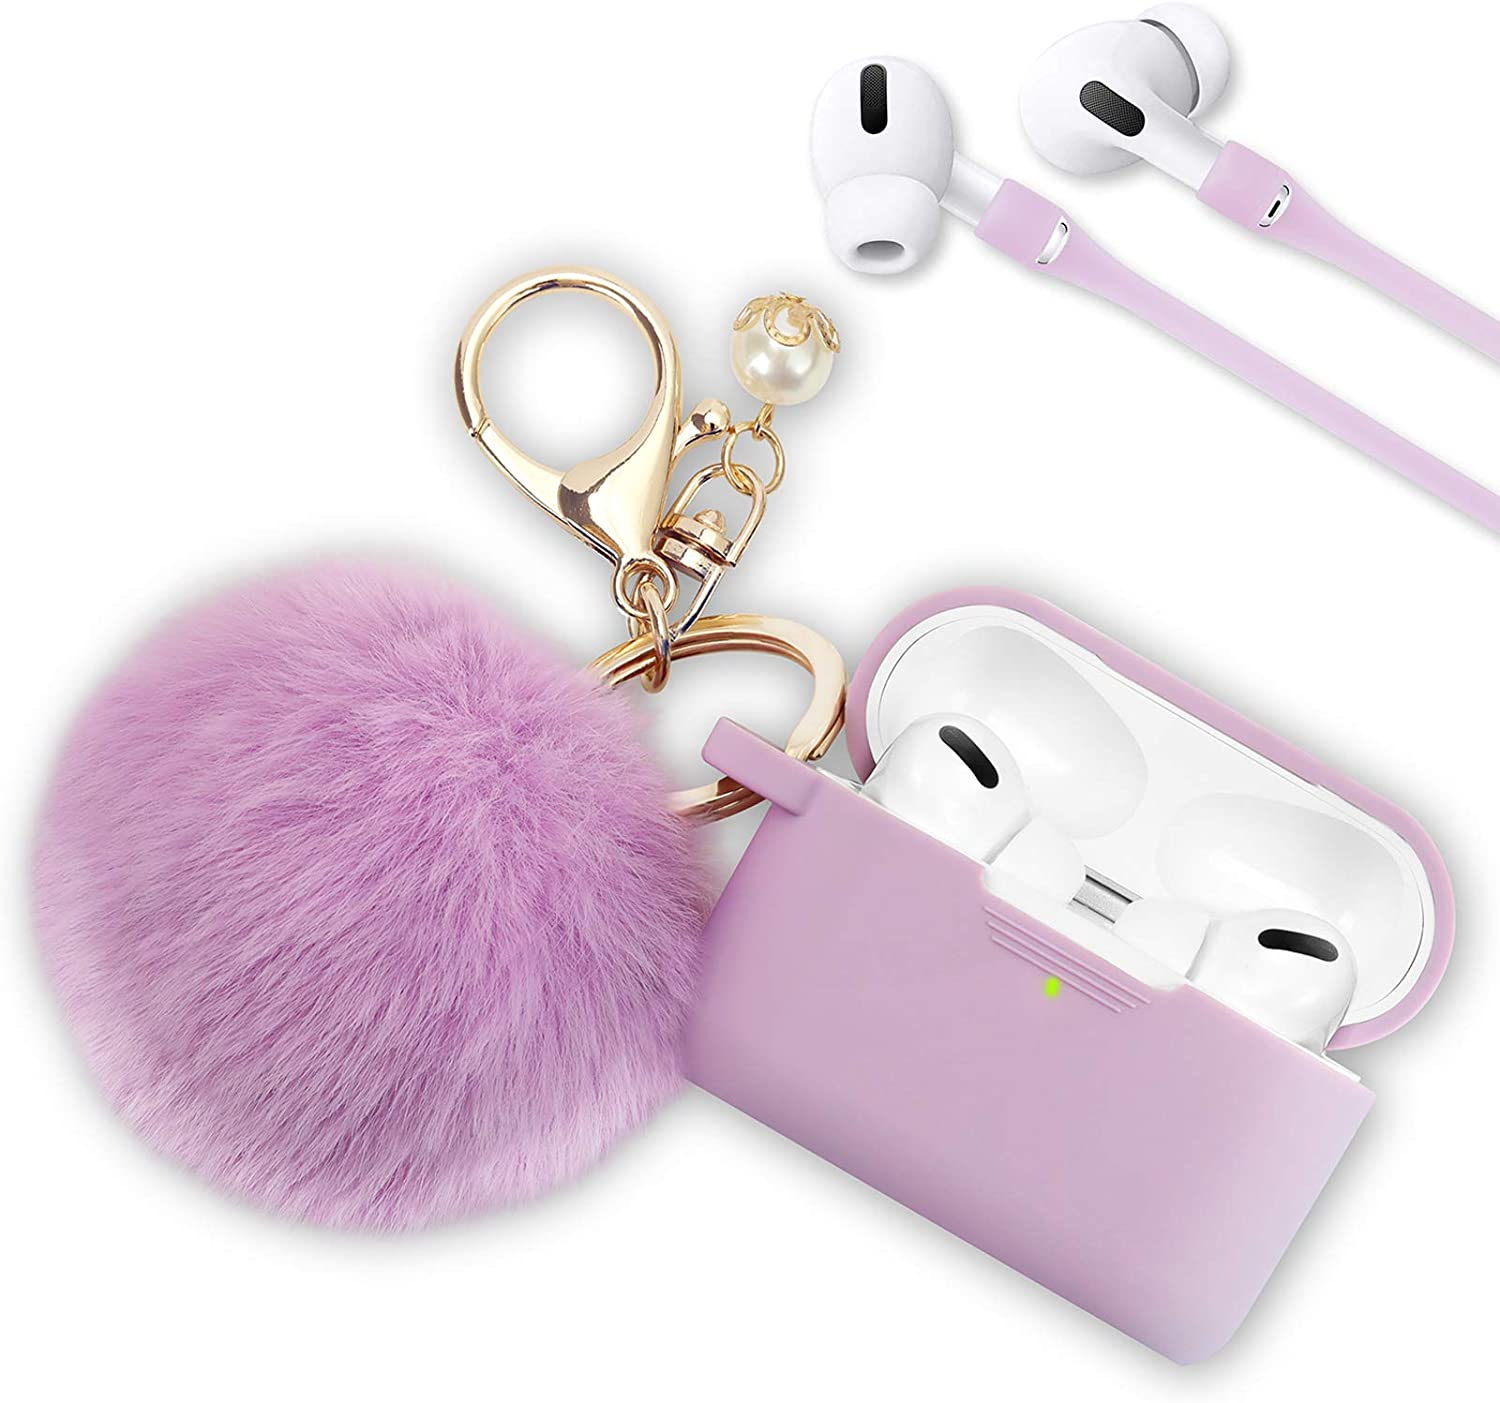 Case for Airpods Pro, Filoto Airpod Pro Case Cover for Apple Air Pods Pro Wireless Charging Case, Cute Air Pods 3 Silicone Protective Accessories Keychain/Pompom/Strap,Purple